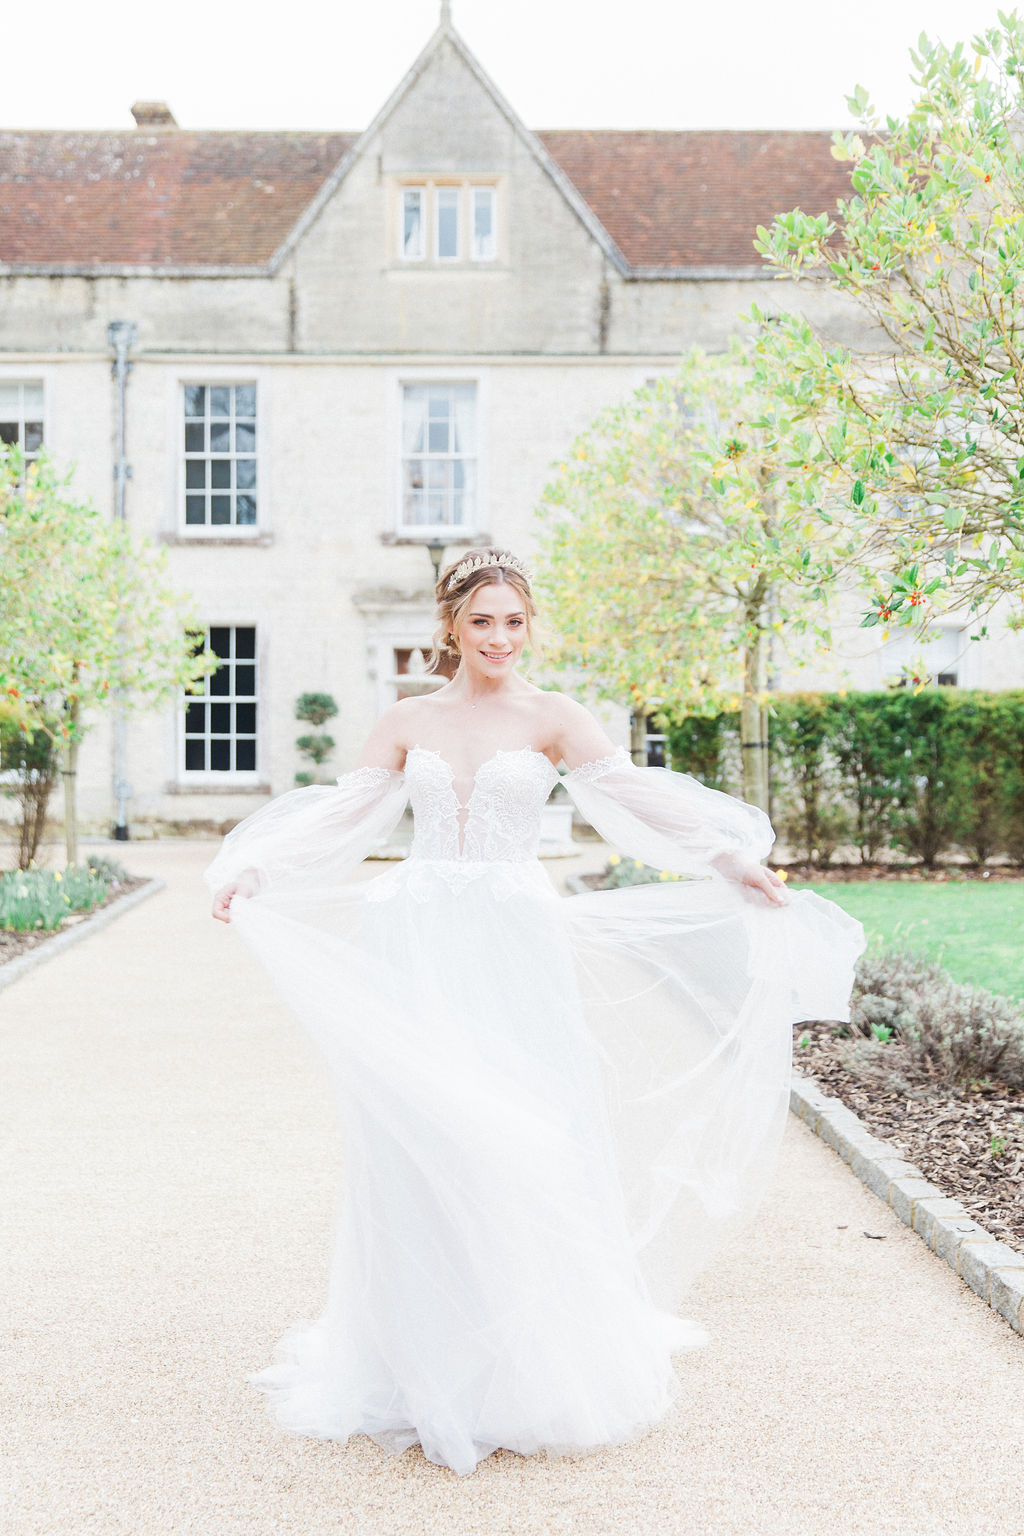 Stunning bride in Chic Nostalgia, our daily reminders for you. Self care and love from Hannah